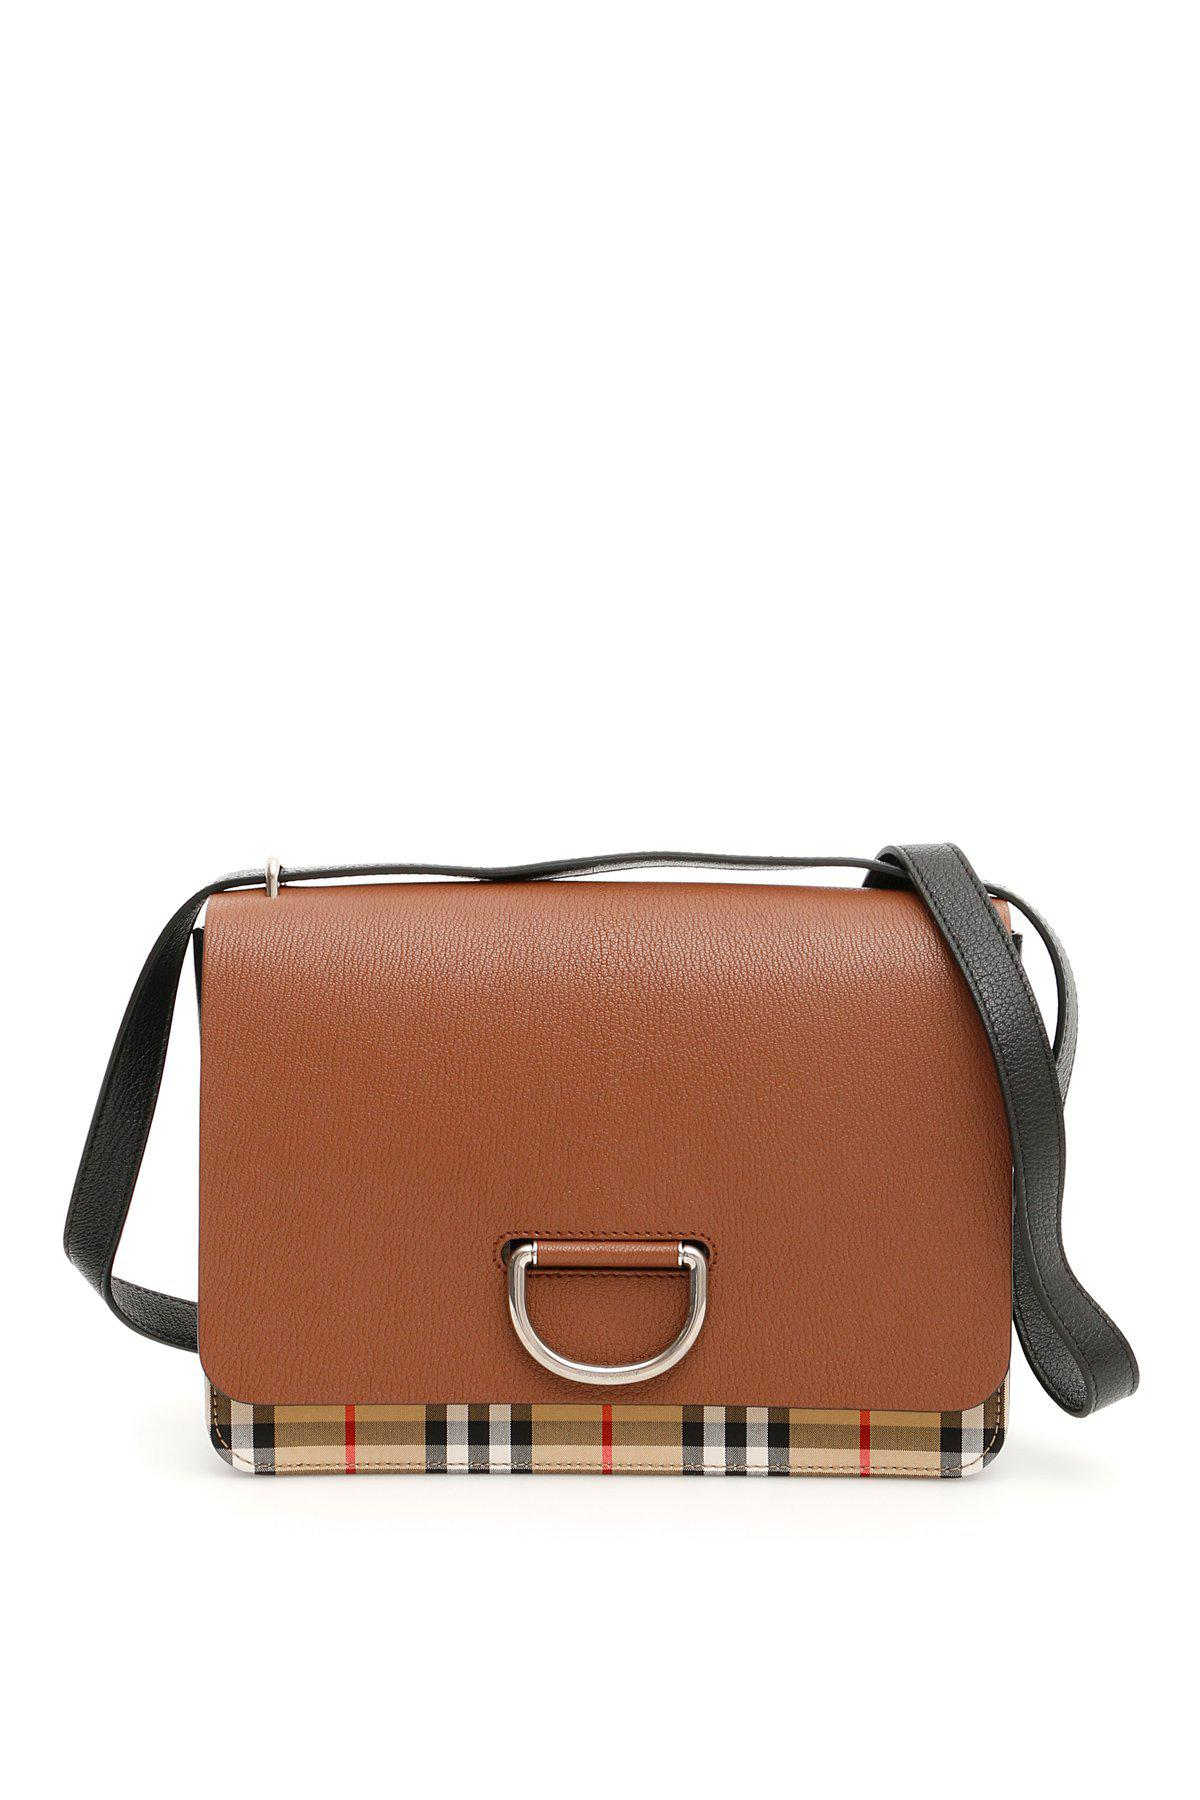 ecc3b22a2ed2 Lyst - Burberry D-ring Checked Shoulder Bag in Brown - Save 4%